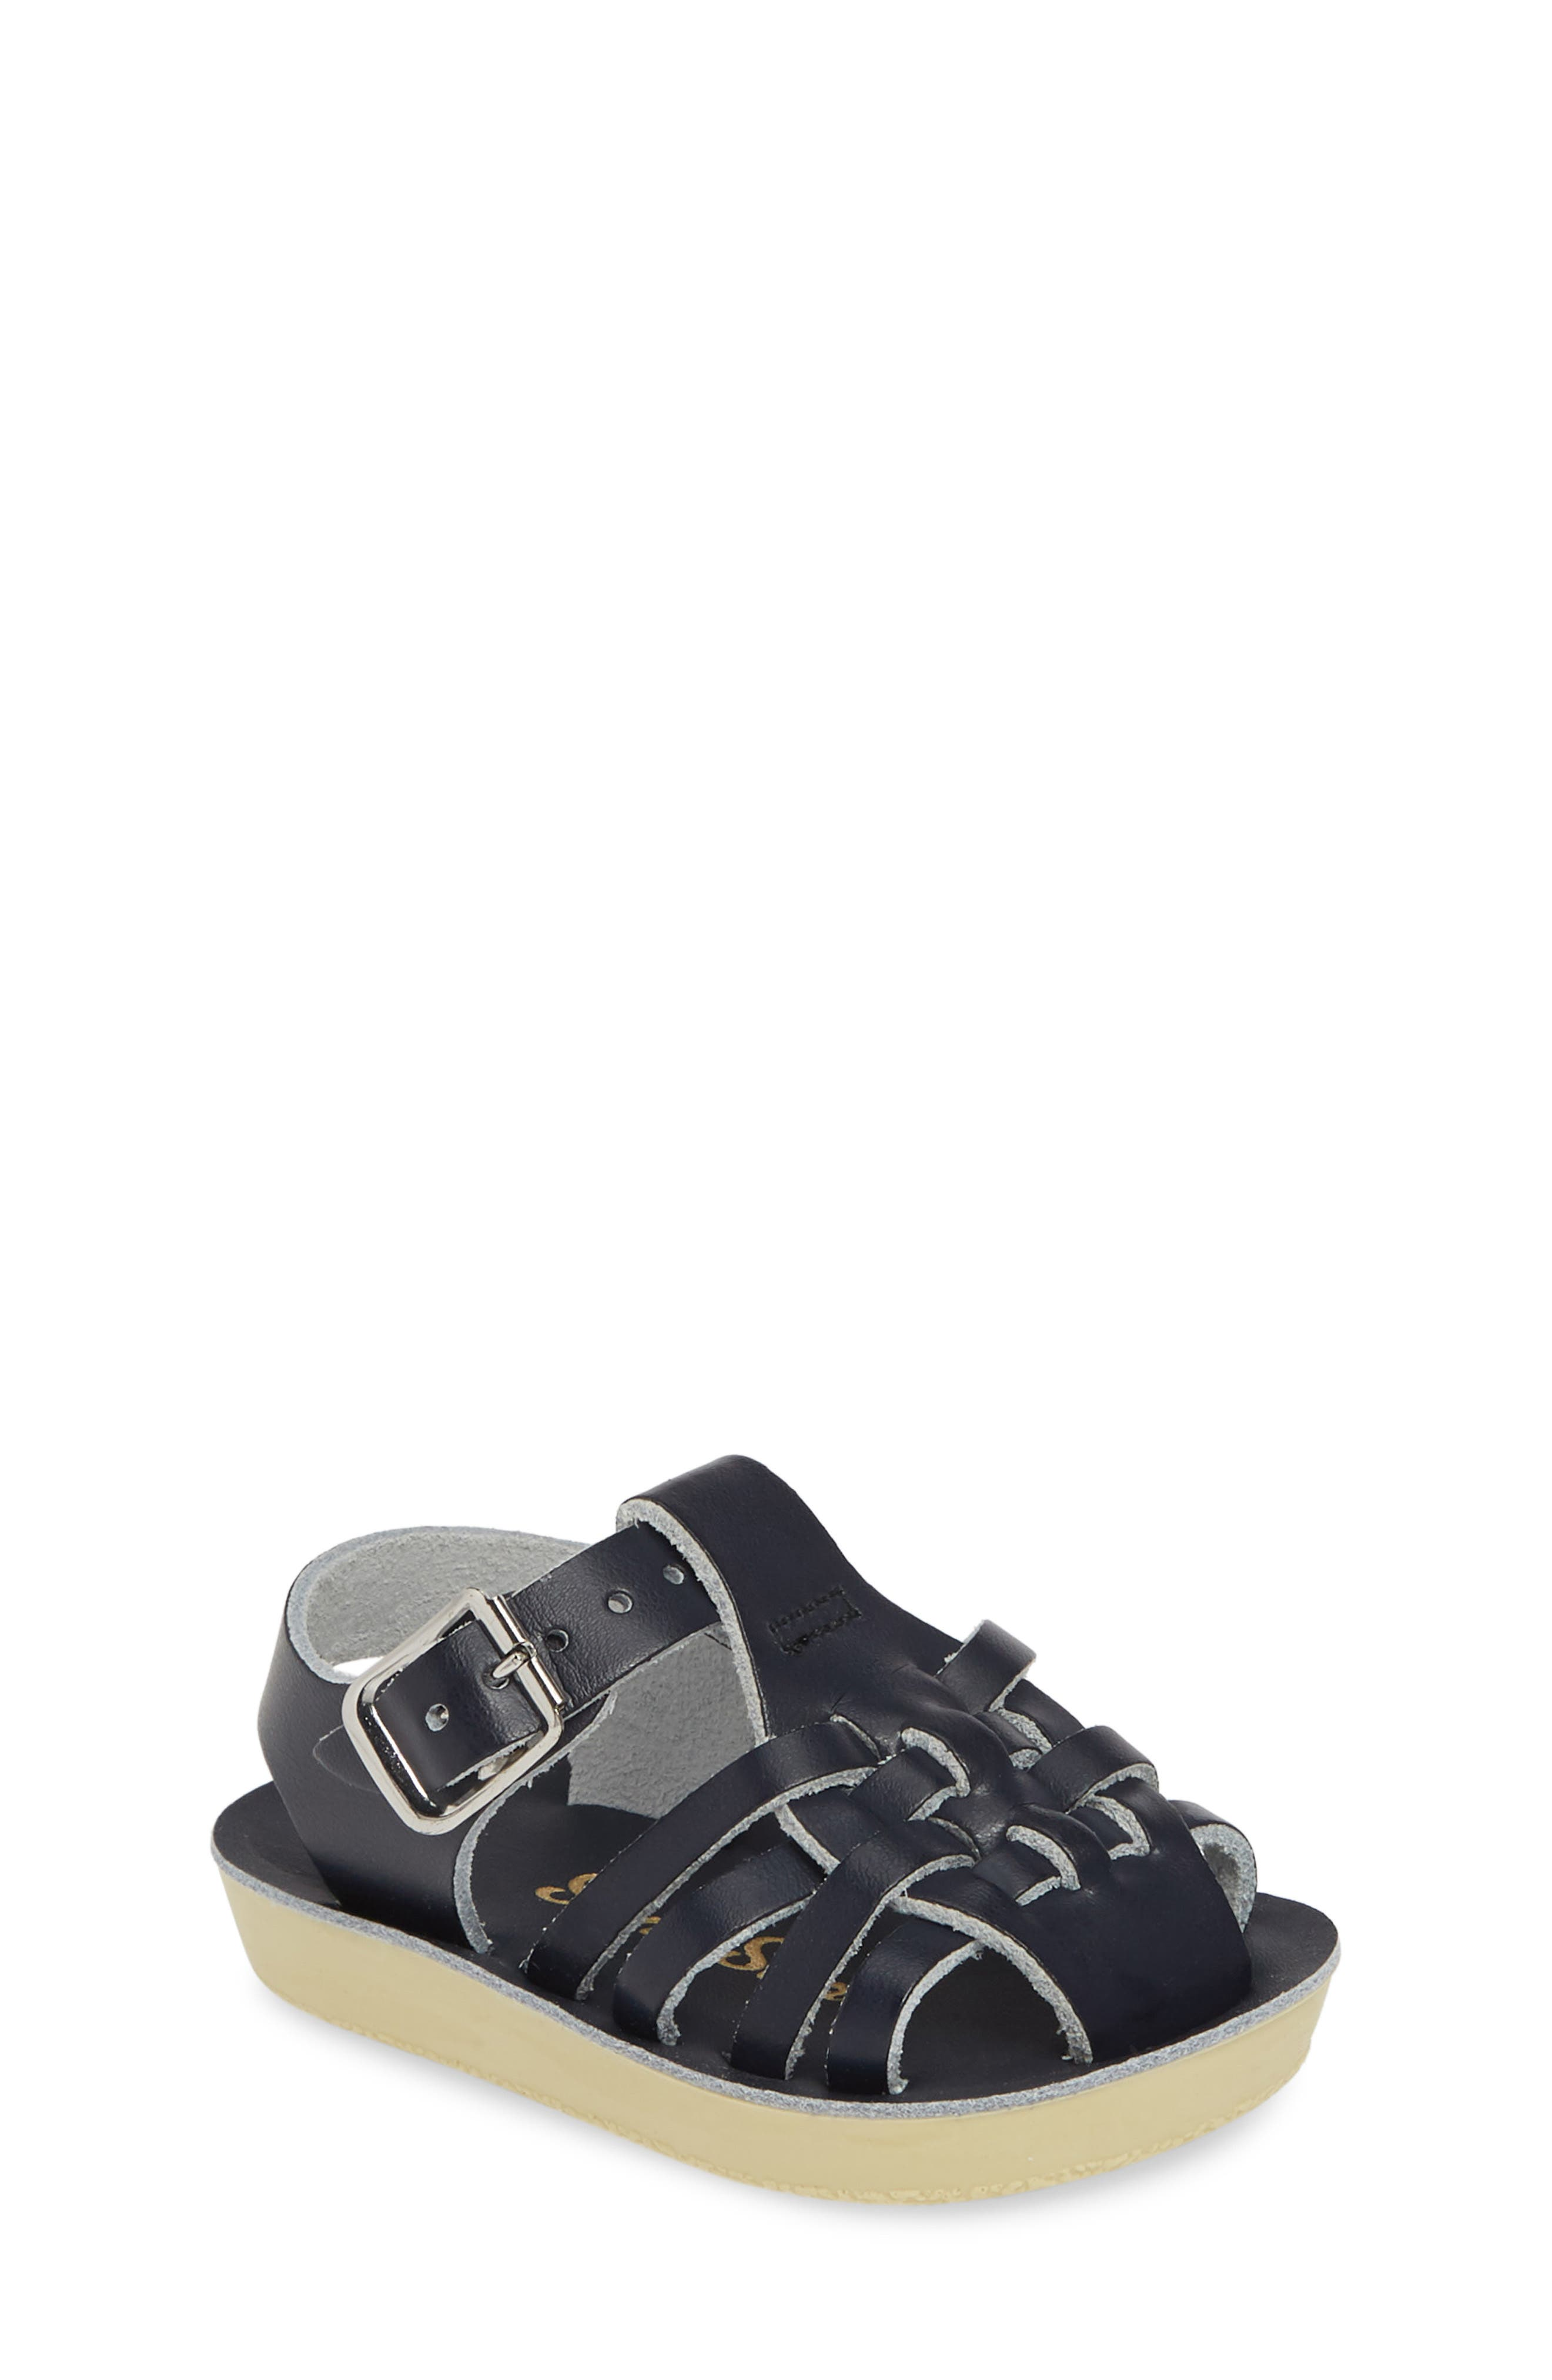 Boys' Salt Water Sandals by Hoy Shoes